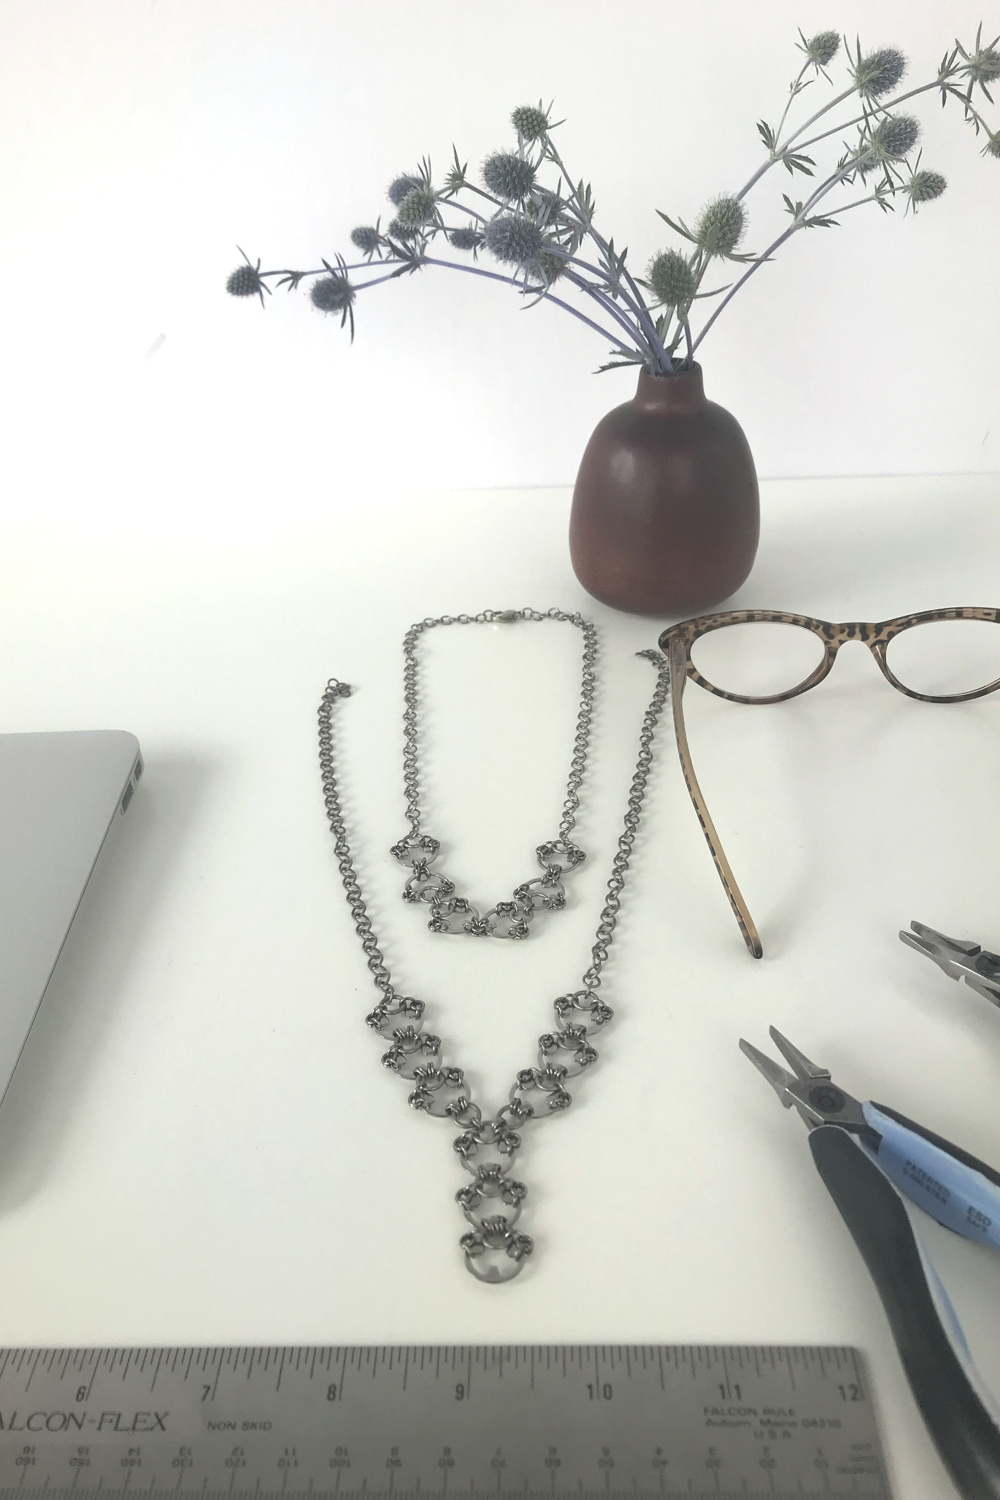 Sea holly (Eryngium) in a brown bud vase by Heath Ceramics on a desk next to Wraptillion's Delicate Scarab Necklace, Delicate Lotus Necklace, reading glasses, ruler, pliers, and a laptop.